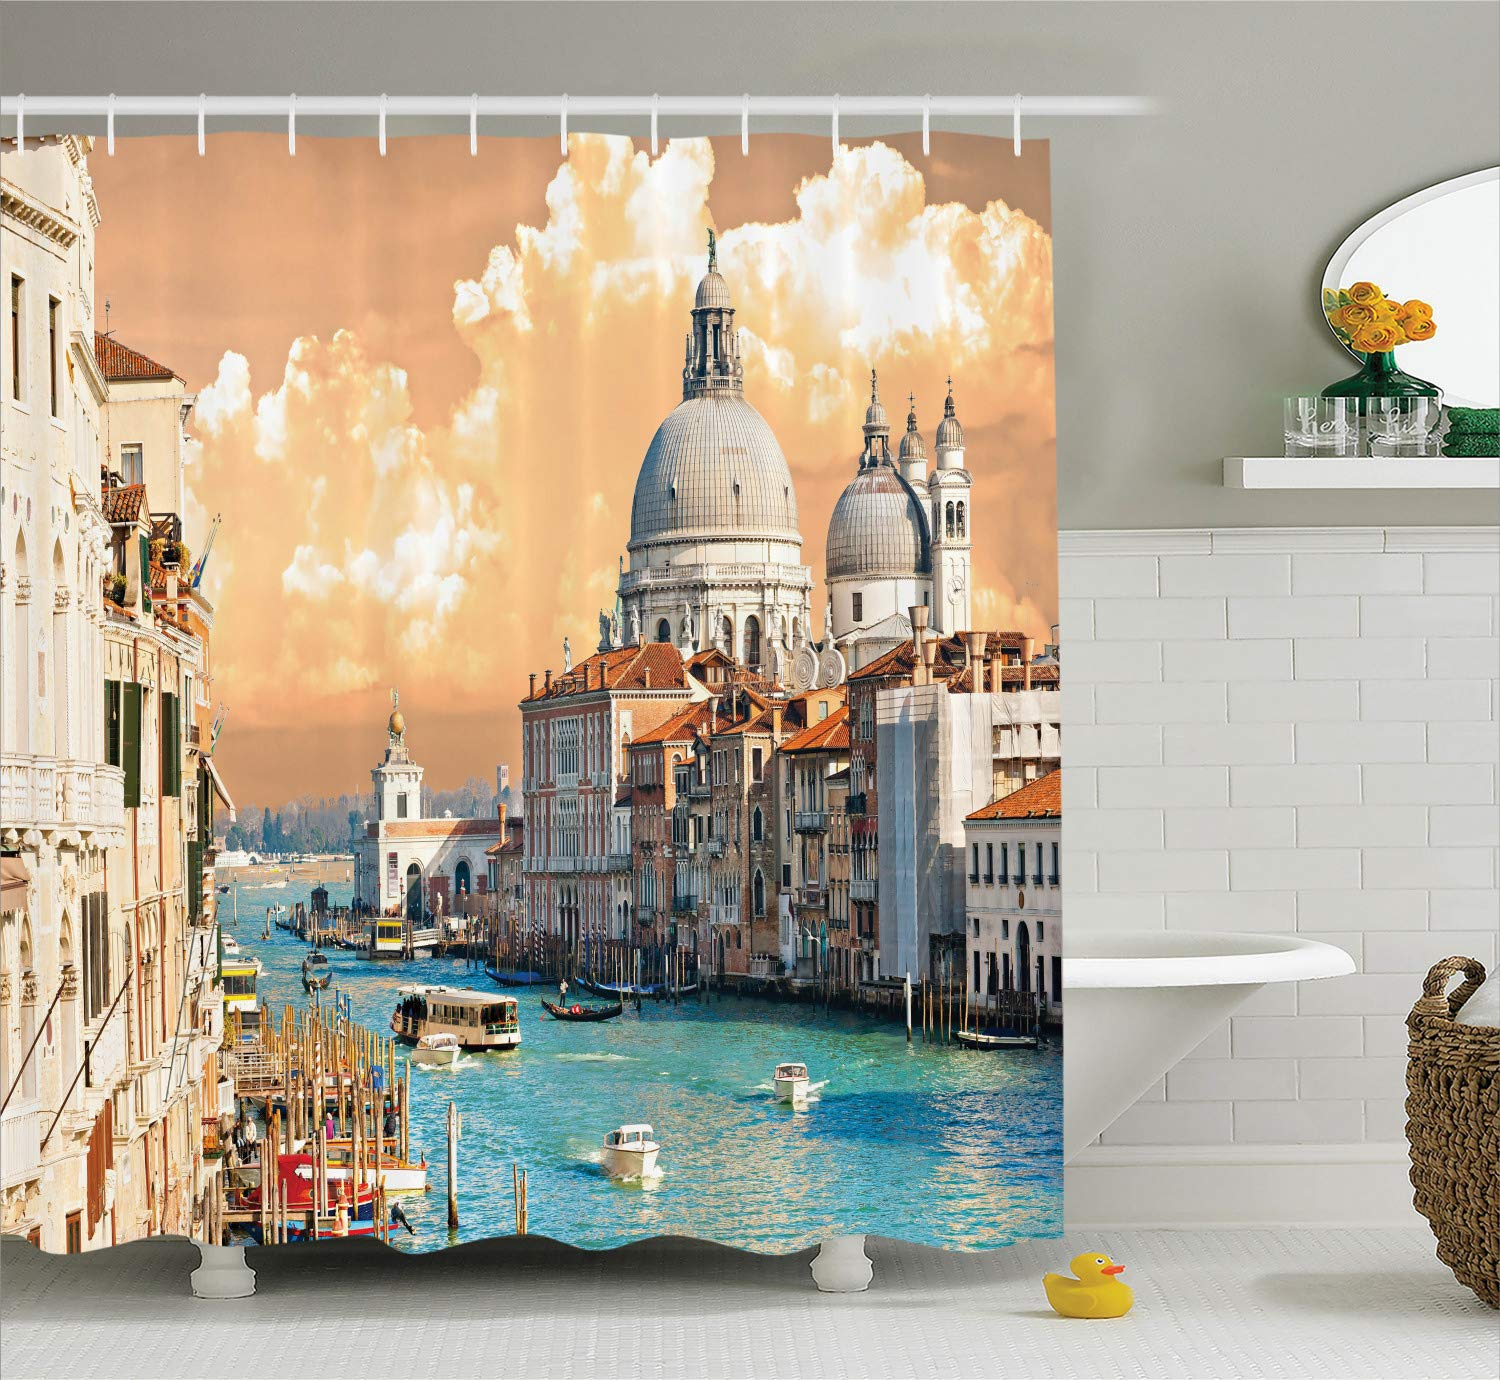 Ambesonne European Shower Curtain, Grand Canal in Venice Italy Historic European Cityscape Town Tower Boho Print, Cloth Fabric Bathroom Decor Set with Hooks, 75'' Long, Multicolor